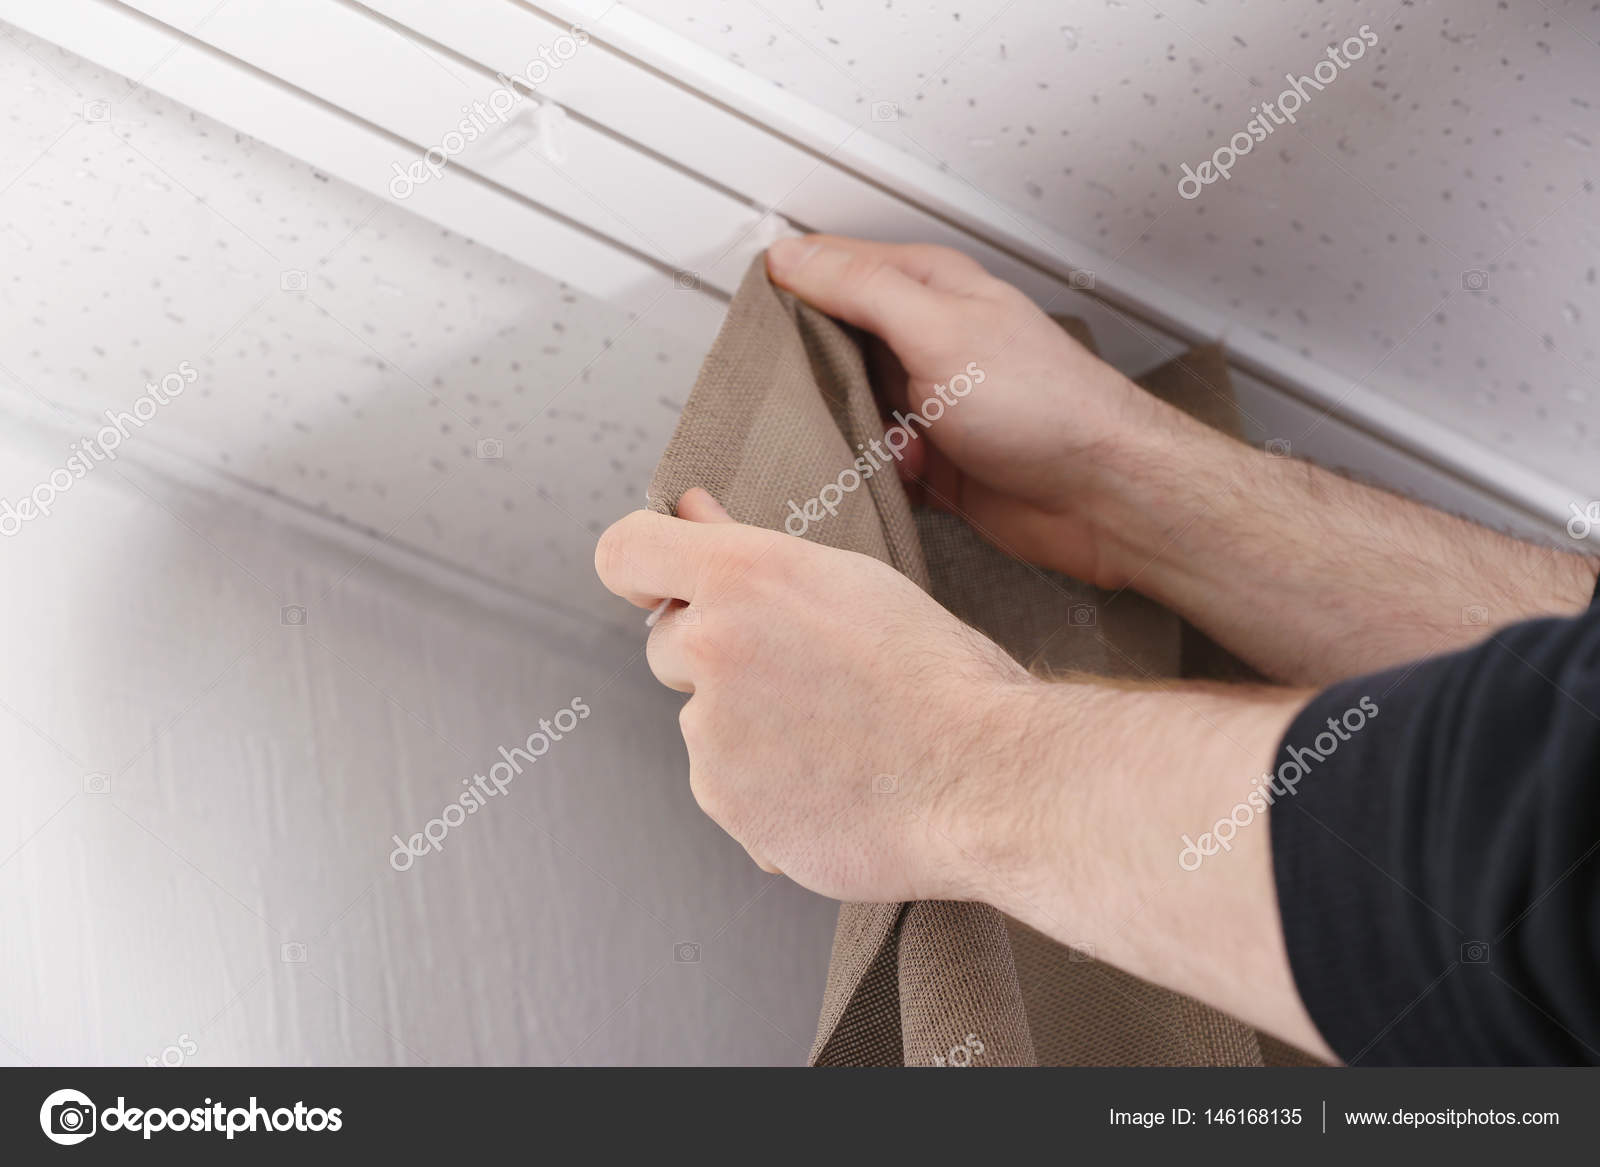 Hands Installing Curtains U2014 Stock Photo #146168135